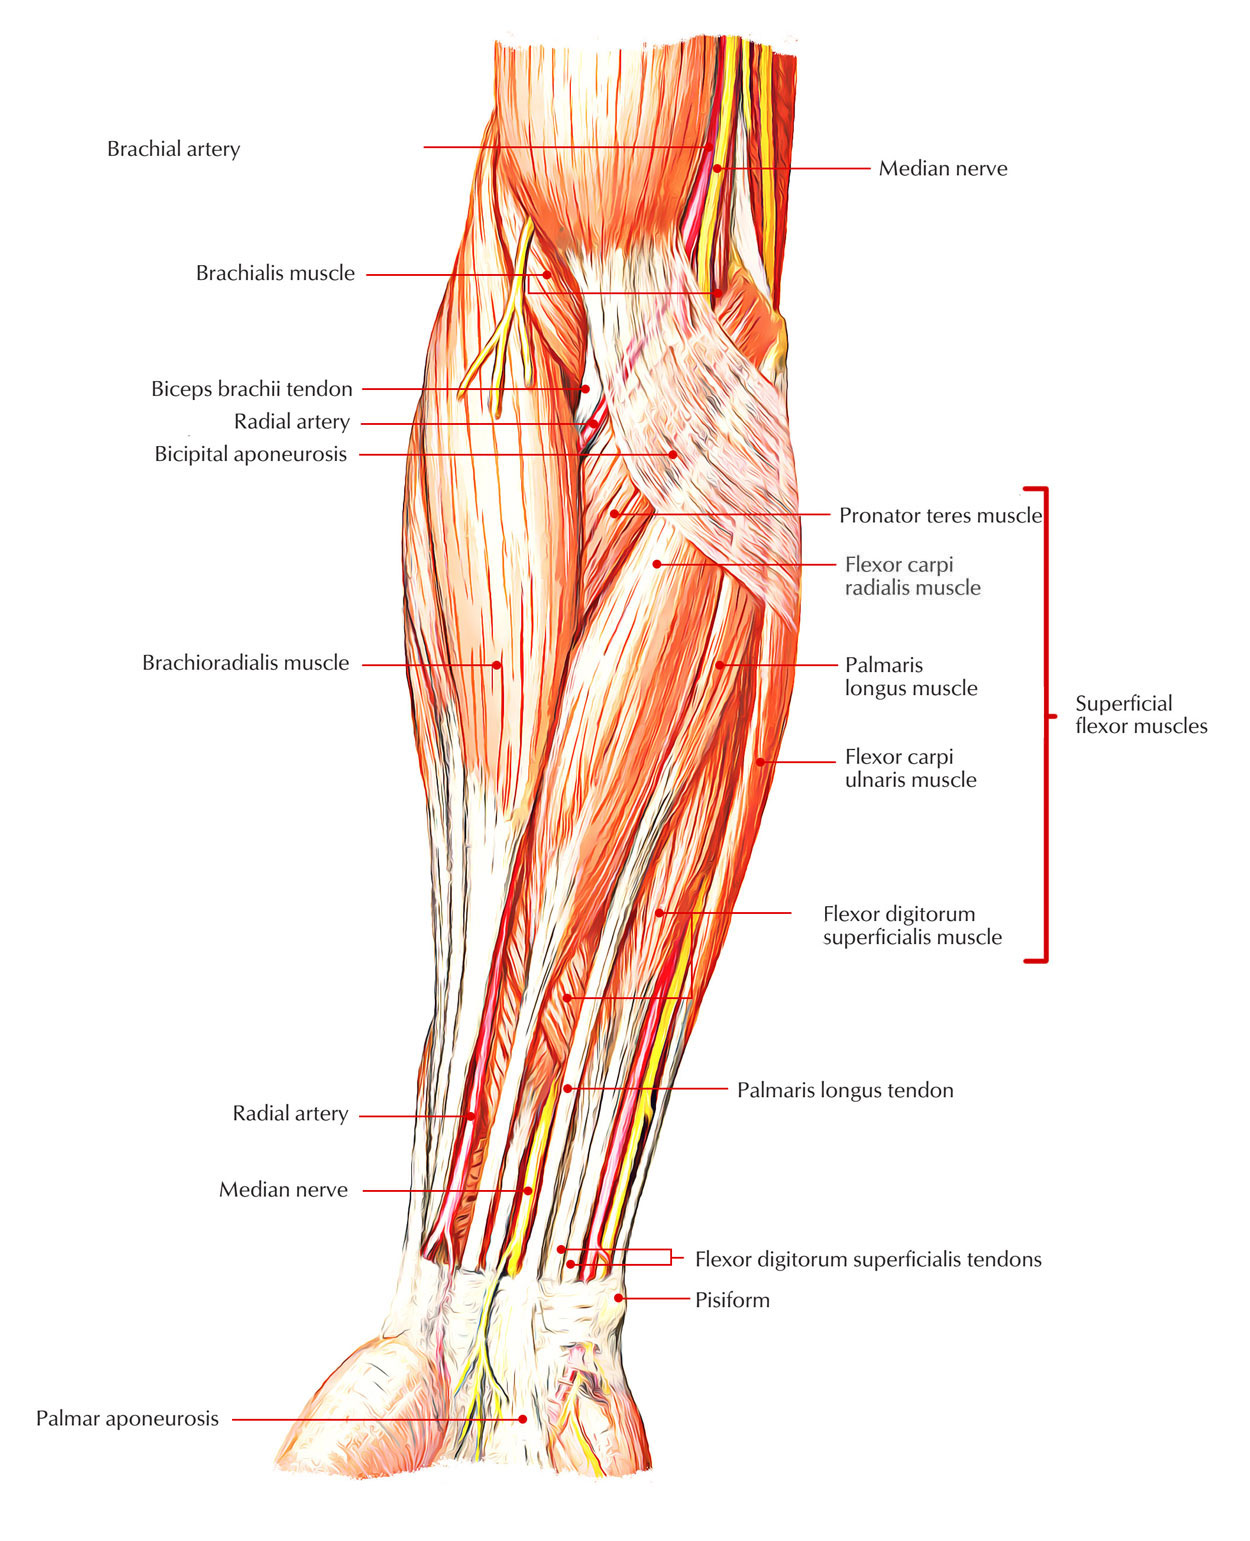 Superficial Anterior Muscles of Forearm